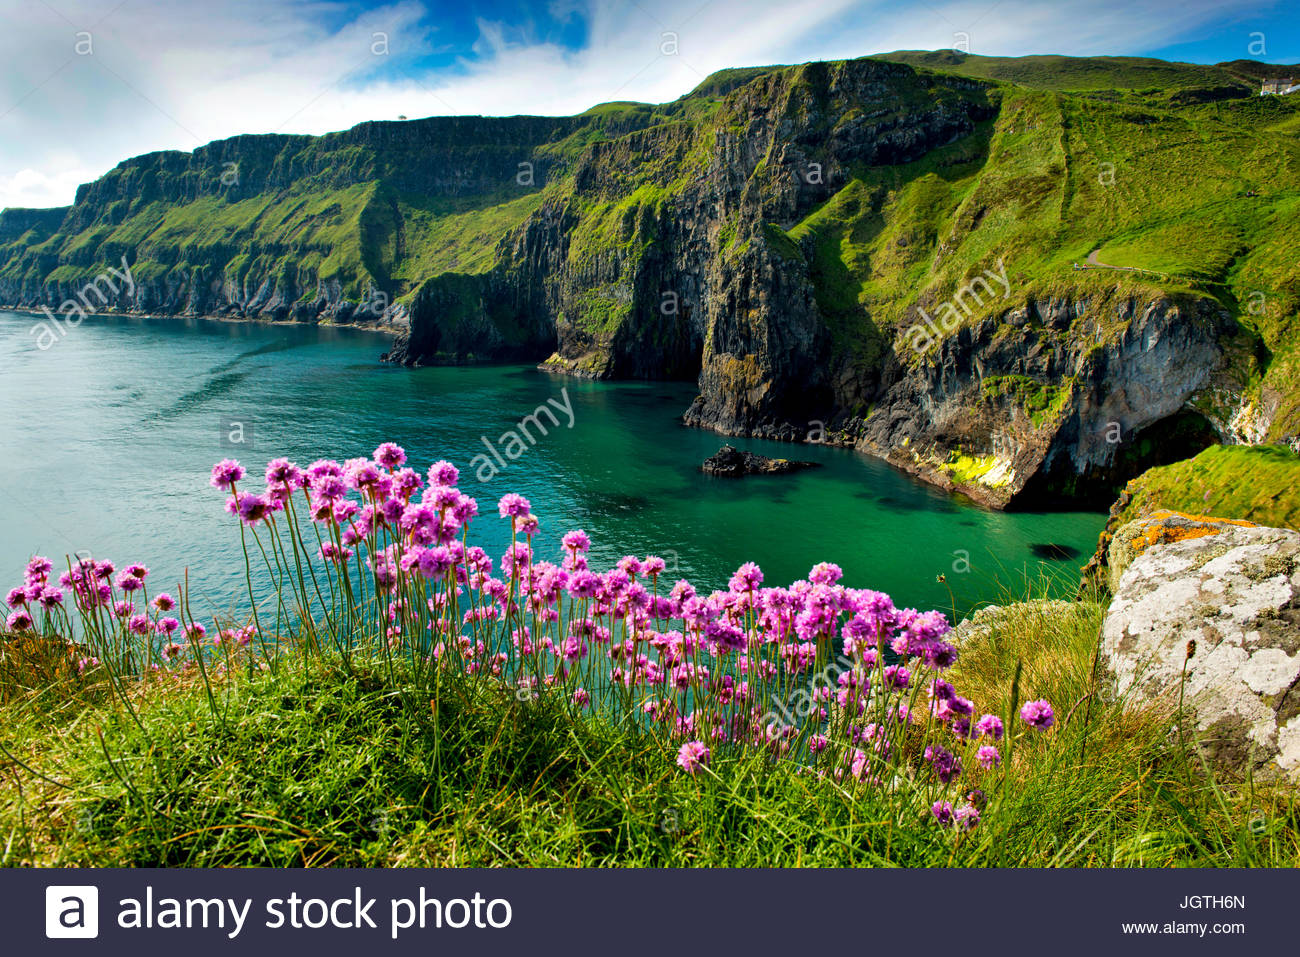 Sea pinks bloom on a cliff edge at Carrick-a-rede. - Stock Image